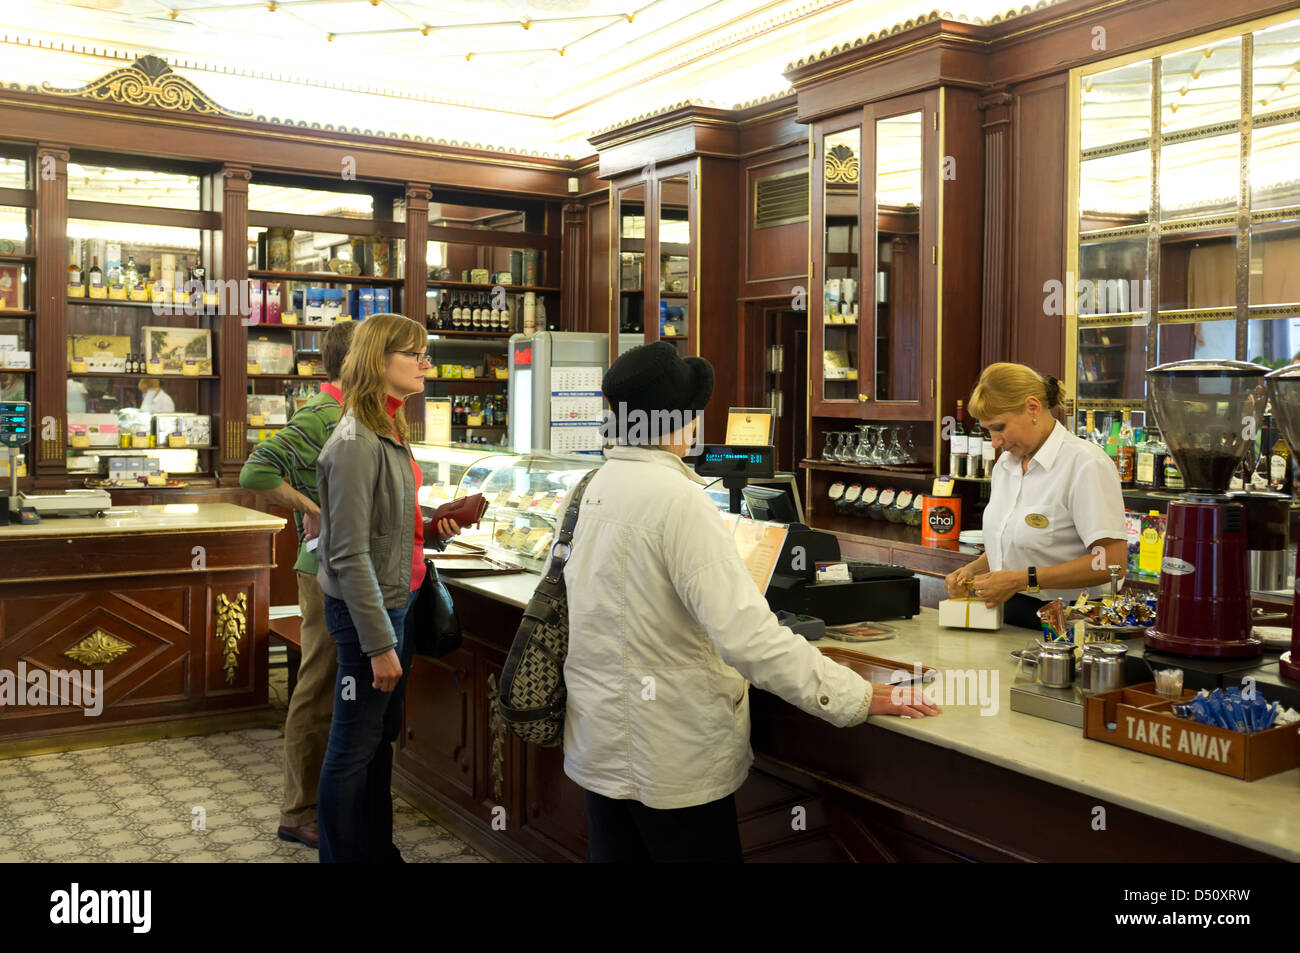 Tallinn, Estonia, guests at Cafe Maiasmokk - Stock Image